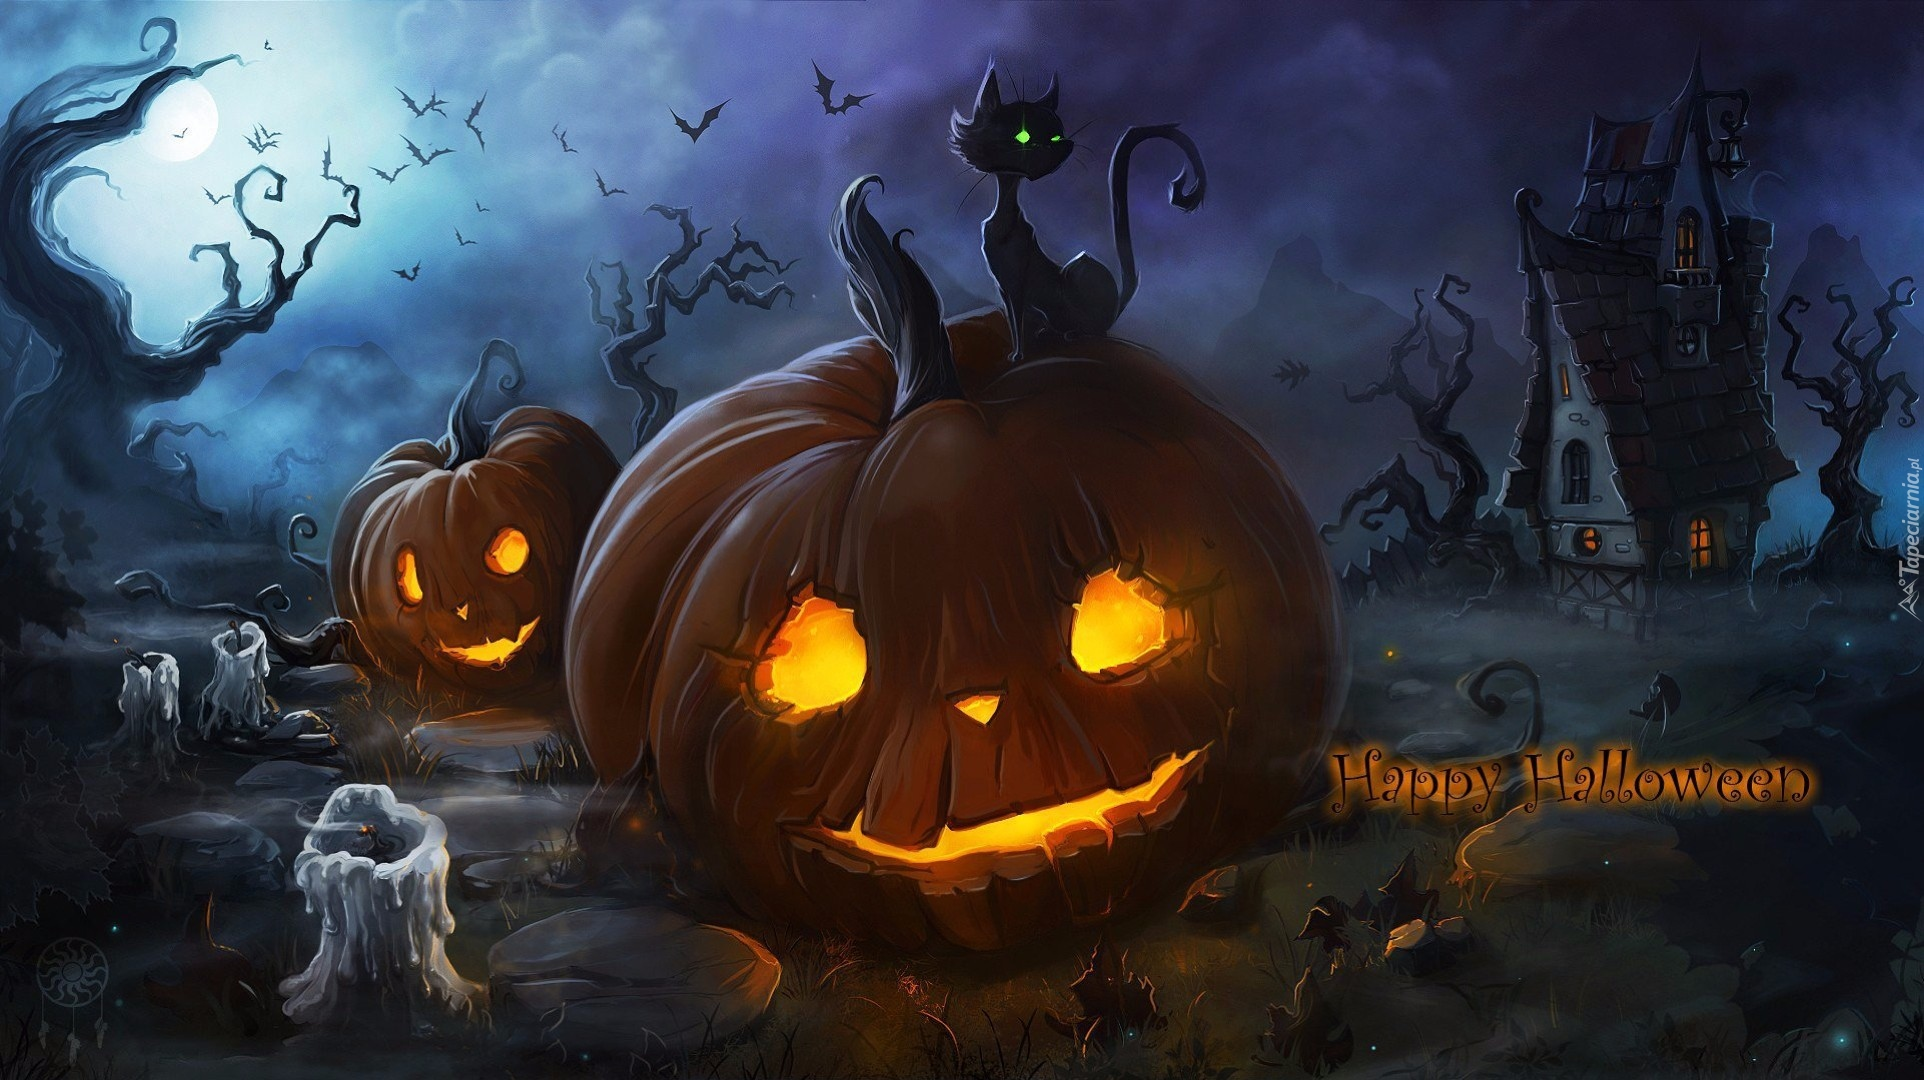 https://xgm.guru/p/wc3/halloween-landcape-contest